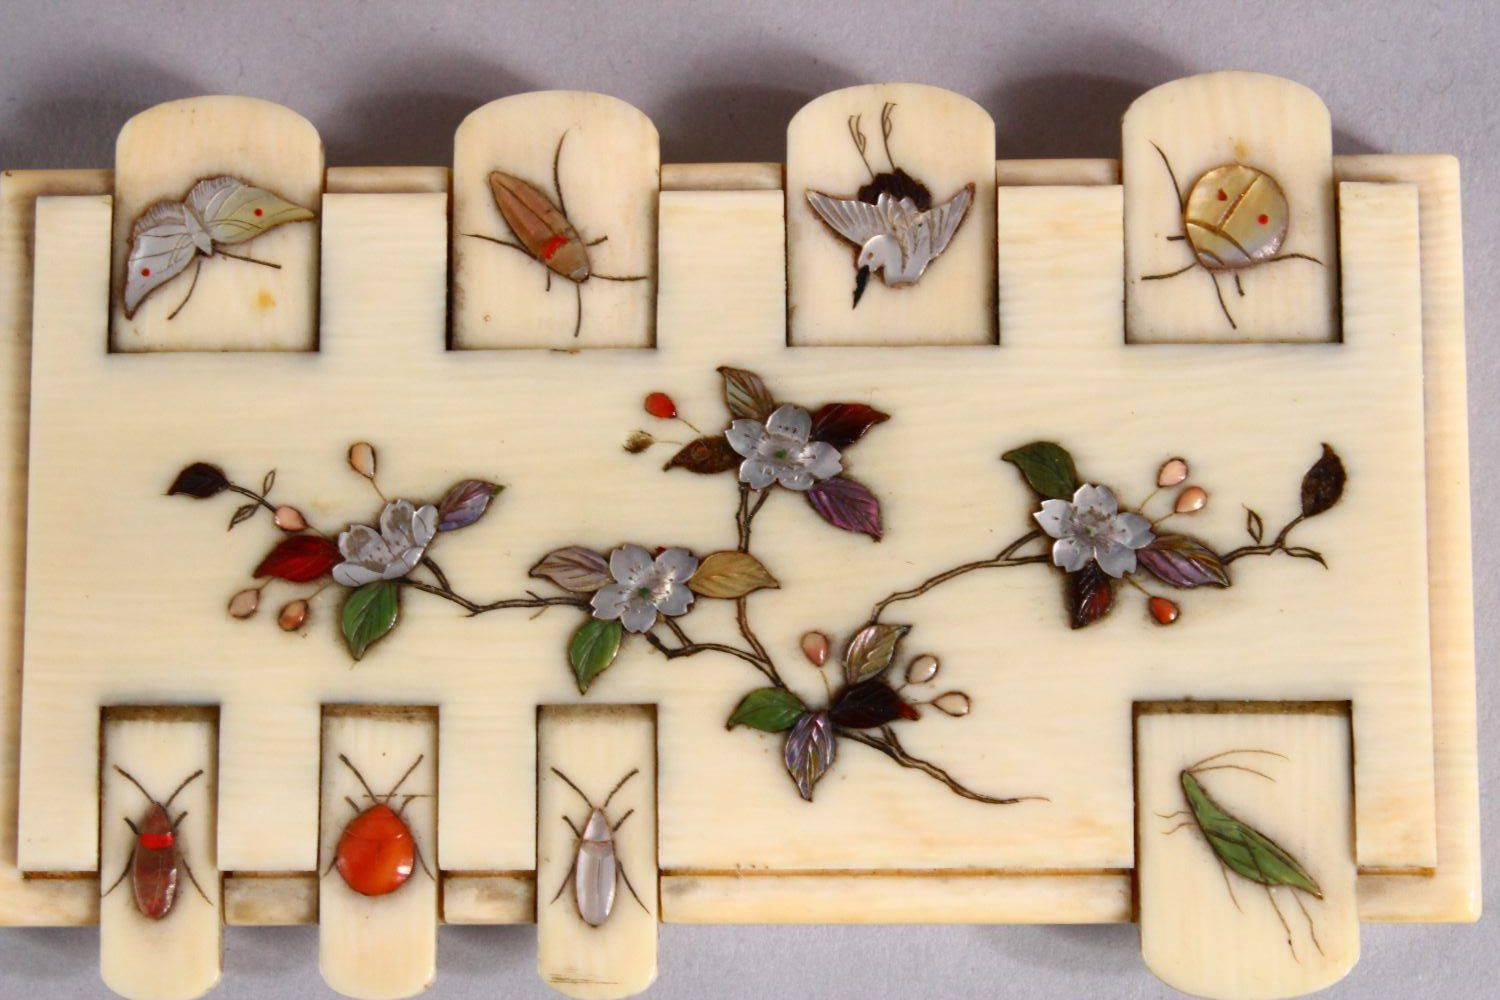 A PAIR OF JAPANESE MEIJI PERIOD SHIBAYAMA IVORY GAMES COUNTERS, each inlaid with semi precious - Image 3 of 4